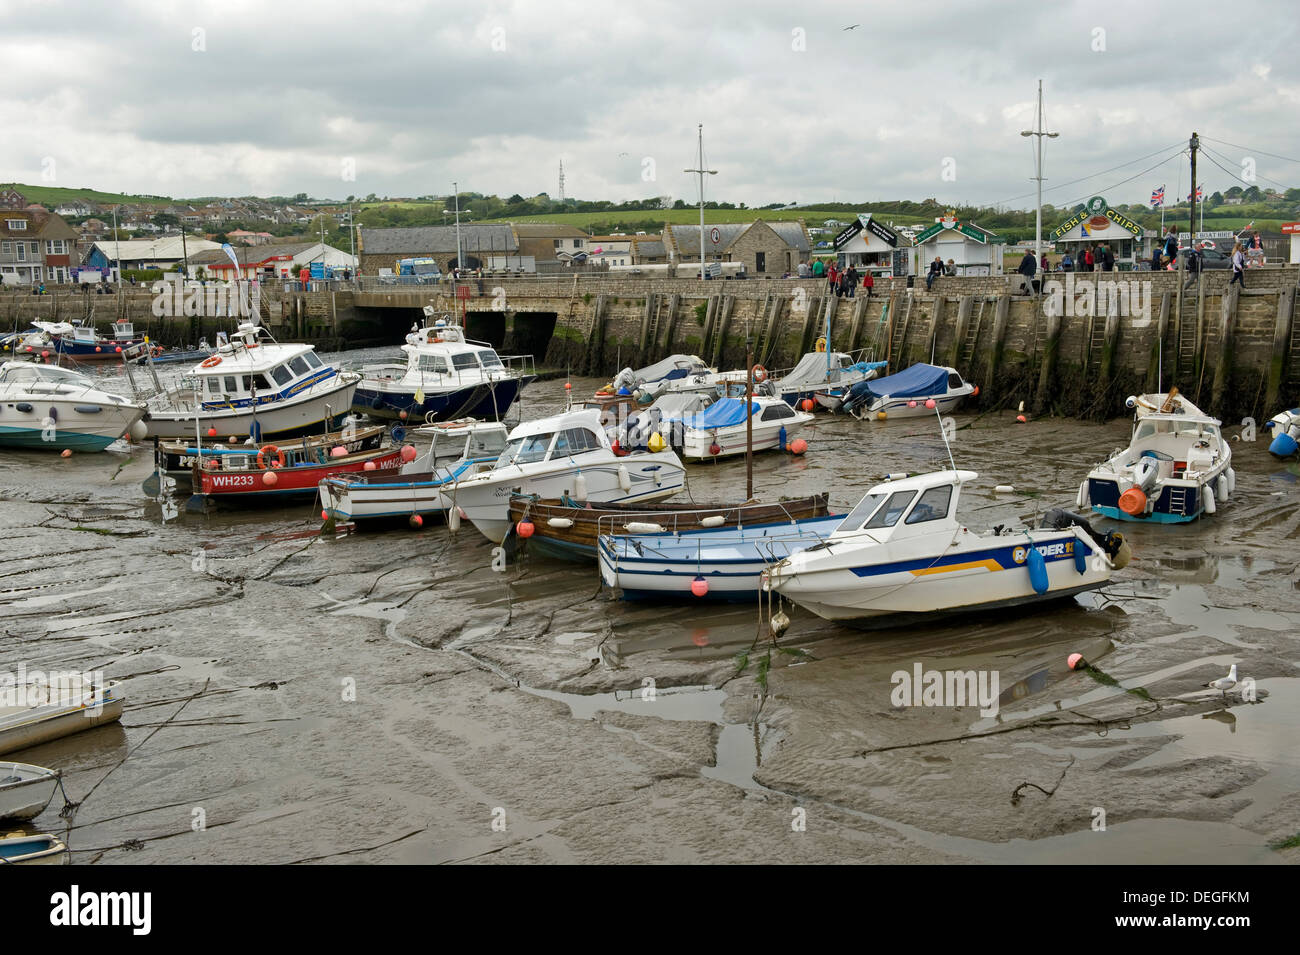 Fishing and leisure boats resting on the mud at low tide in West Bay Harbour, near Bridport in Dorset, May Stock Photo